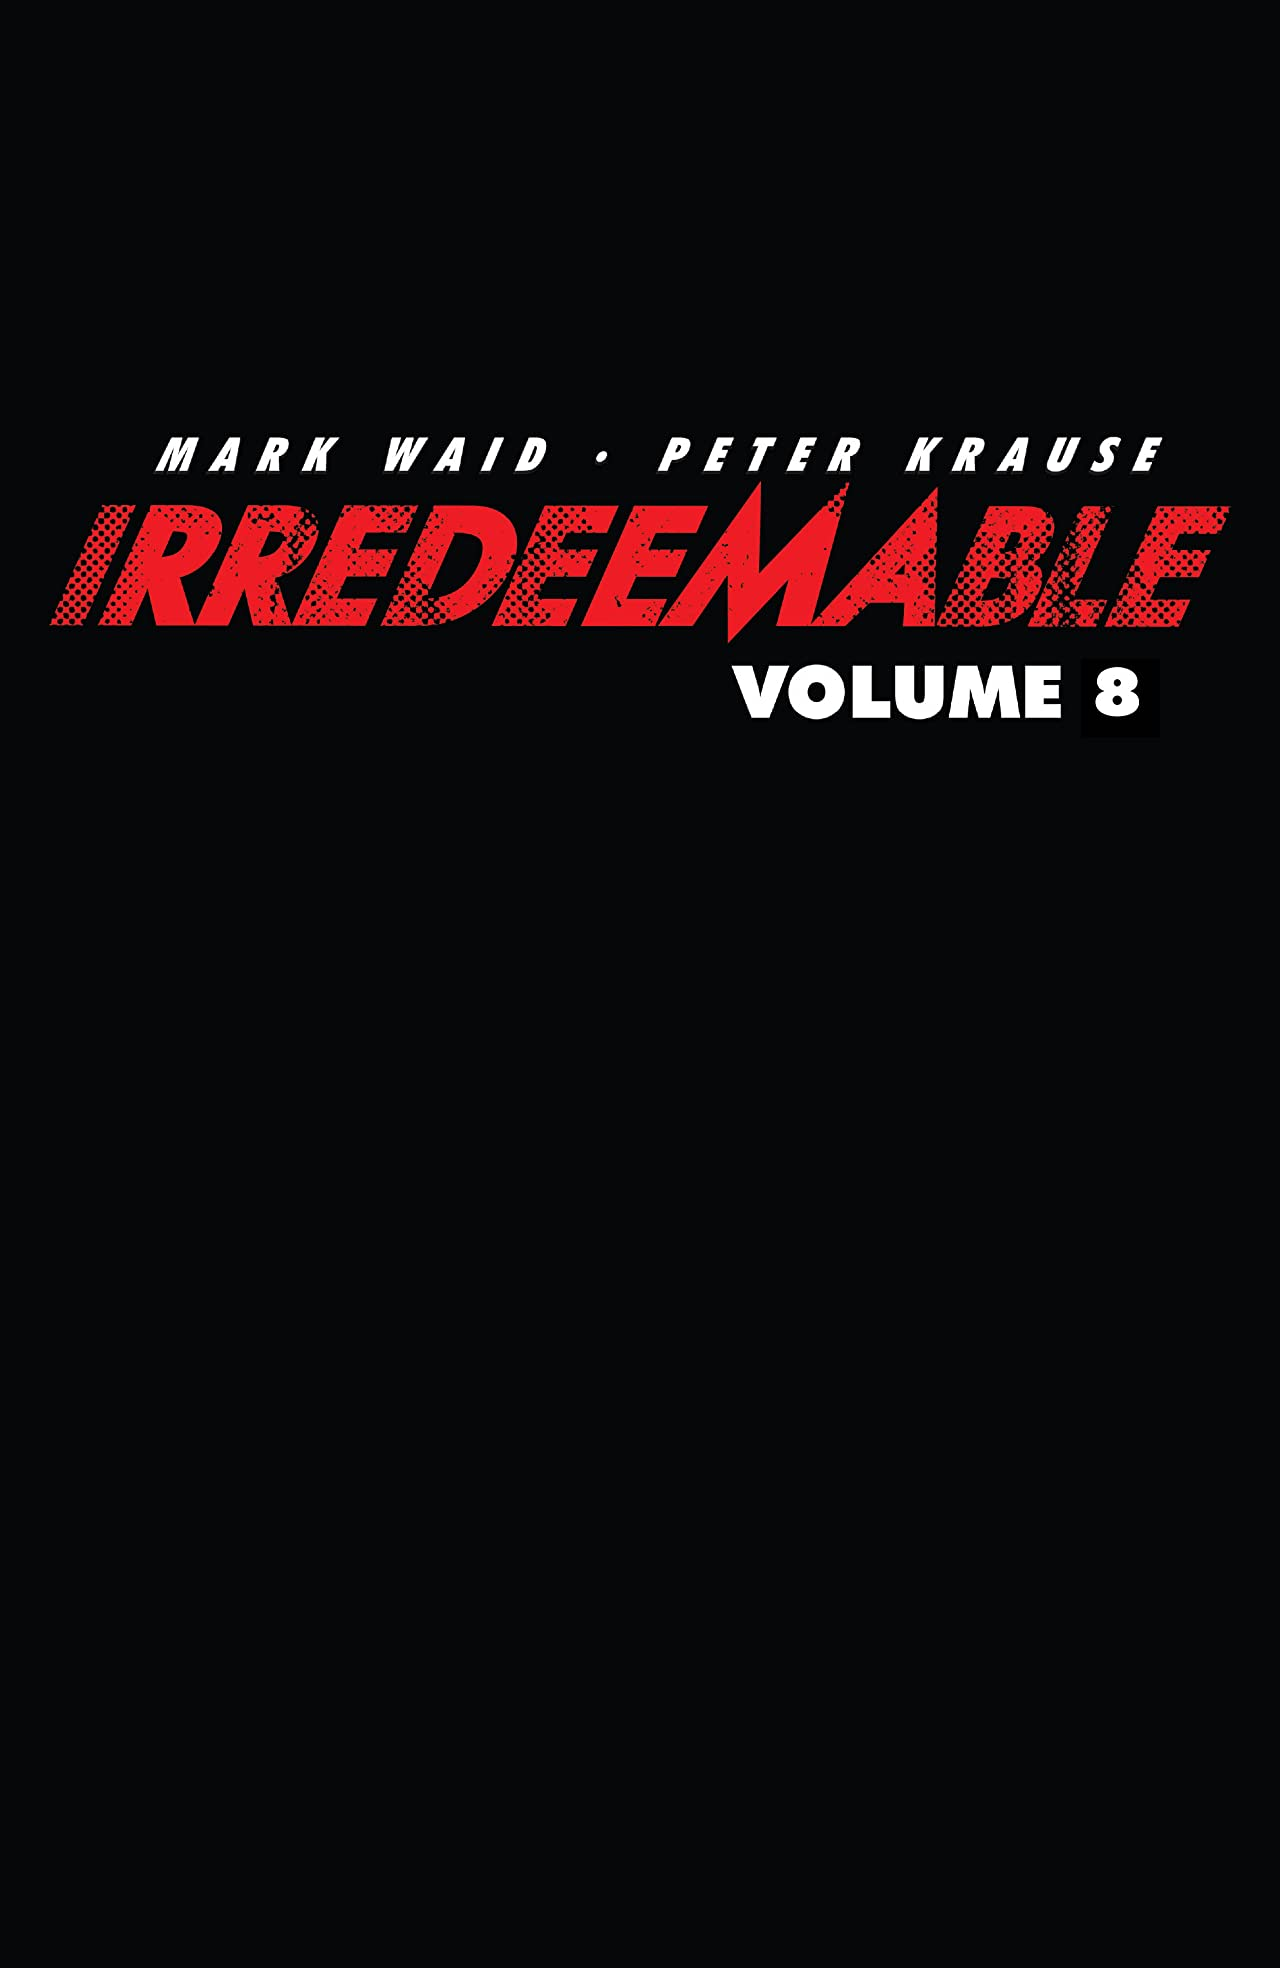 Irredeemable Vol. 8